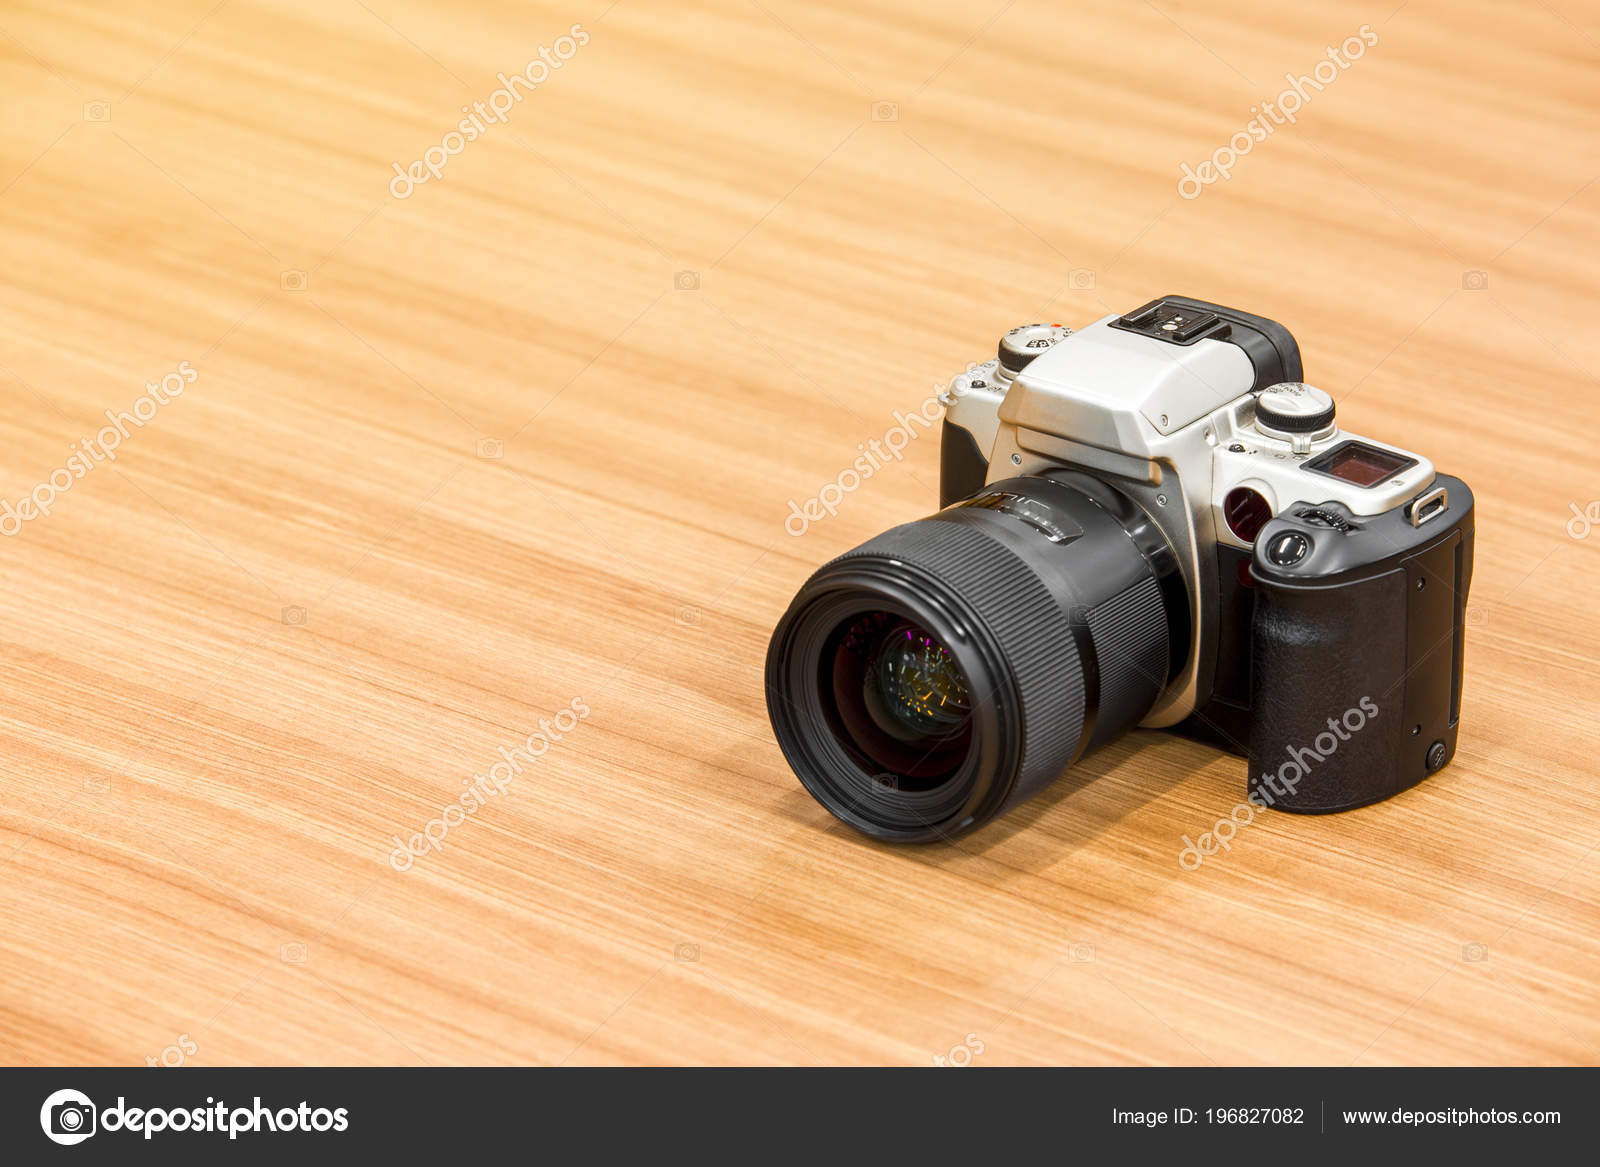 Dslr Camera Wooden Desk Background Stock Photo Funfunphoto